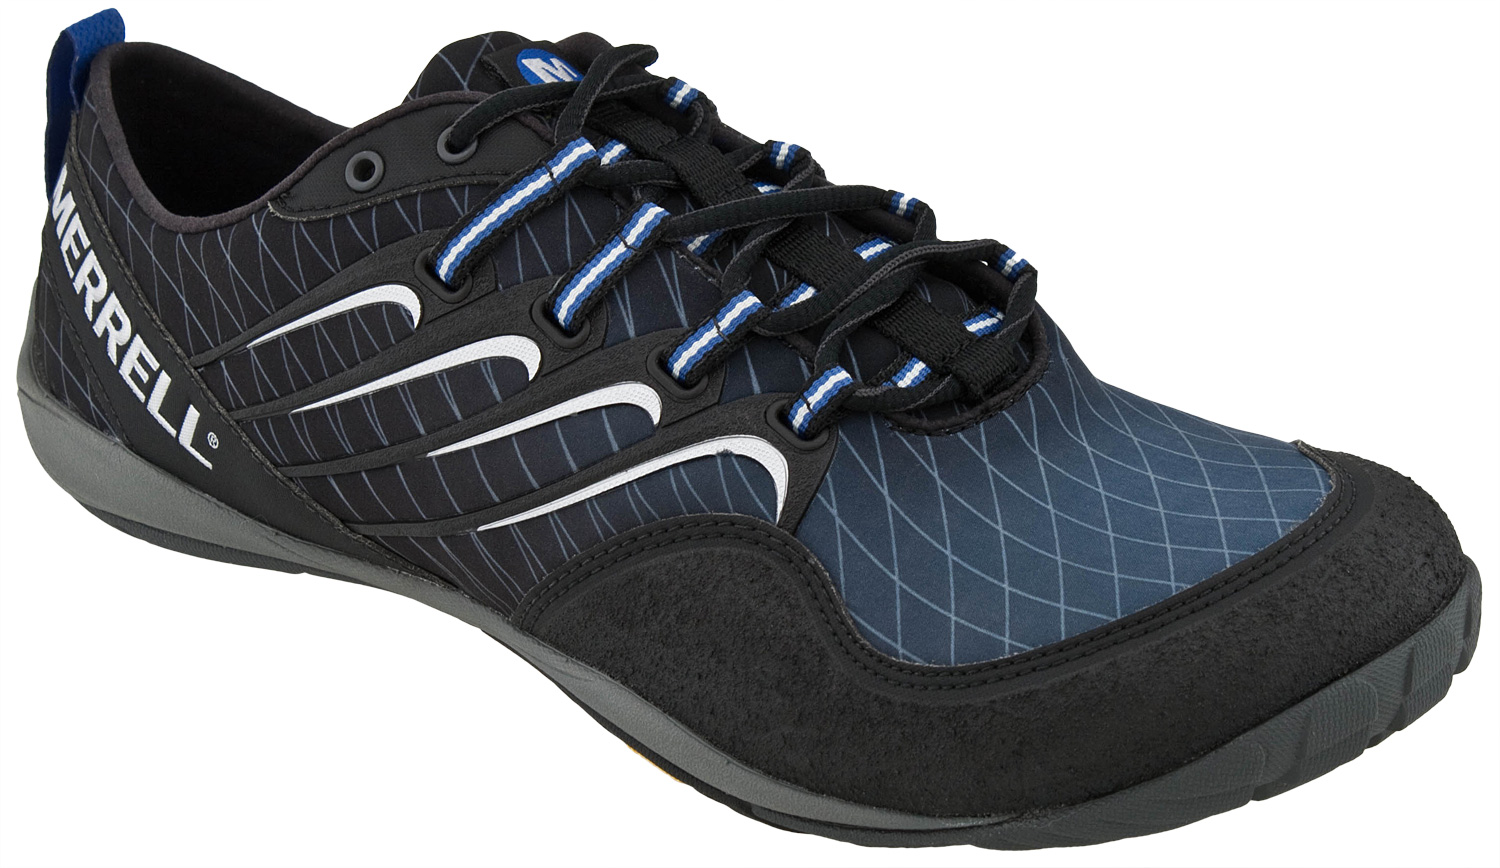 Brooks PureCadence 3 Minimalist Running Shoes (For Men) in Caribbean Sea/Black